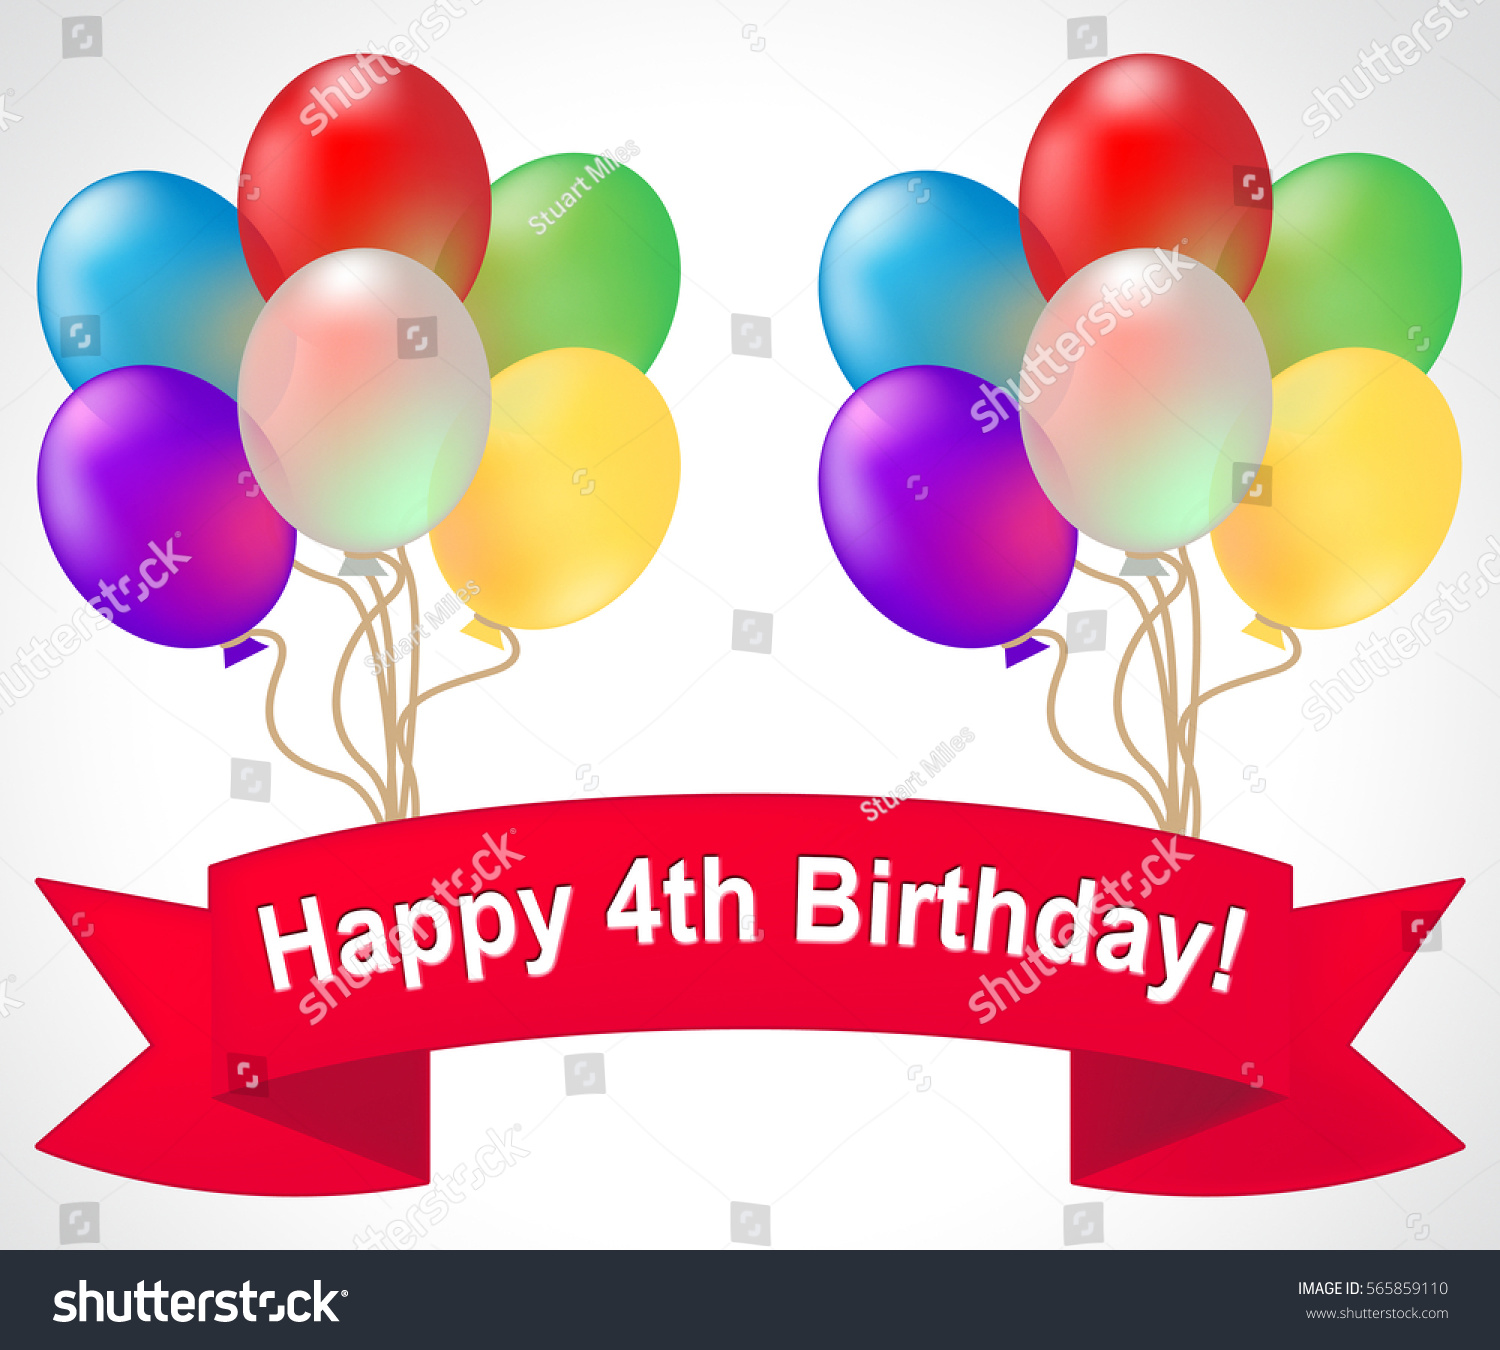 Meaning of fourth - Happy Fourth Birthday Balloons Meaning 4th Party Celebration 3d Illustration